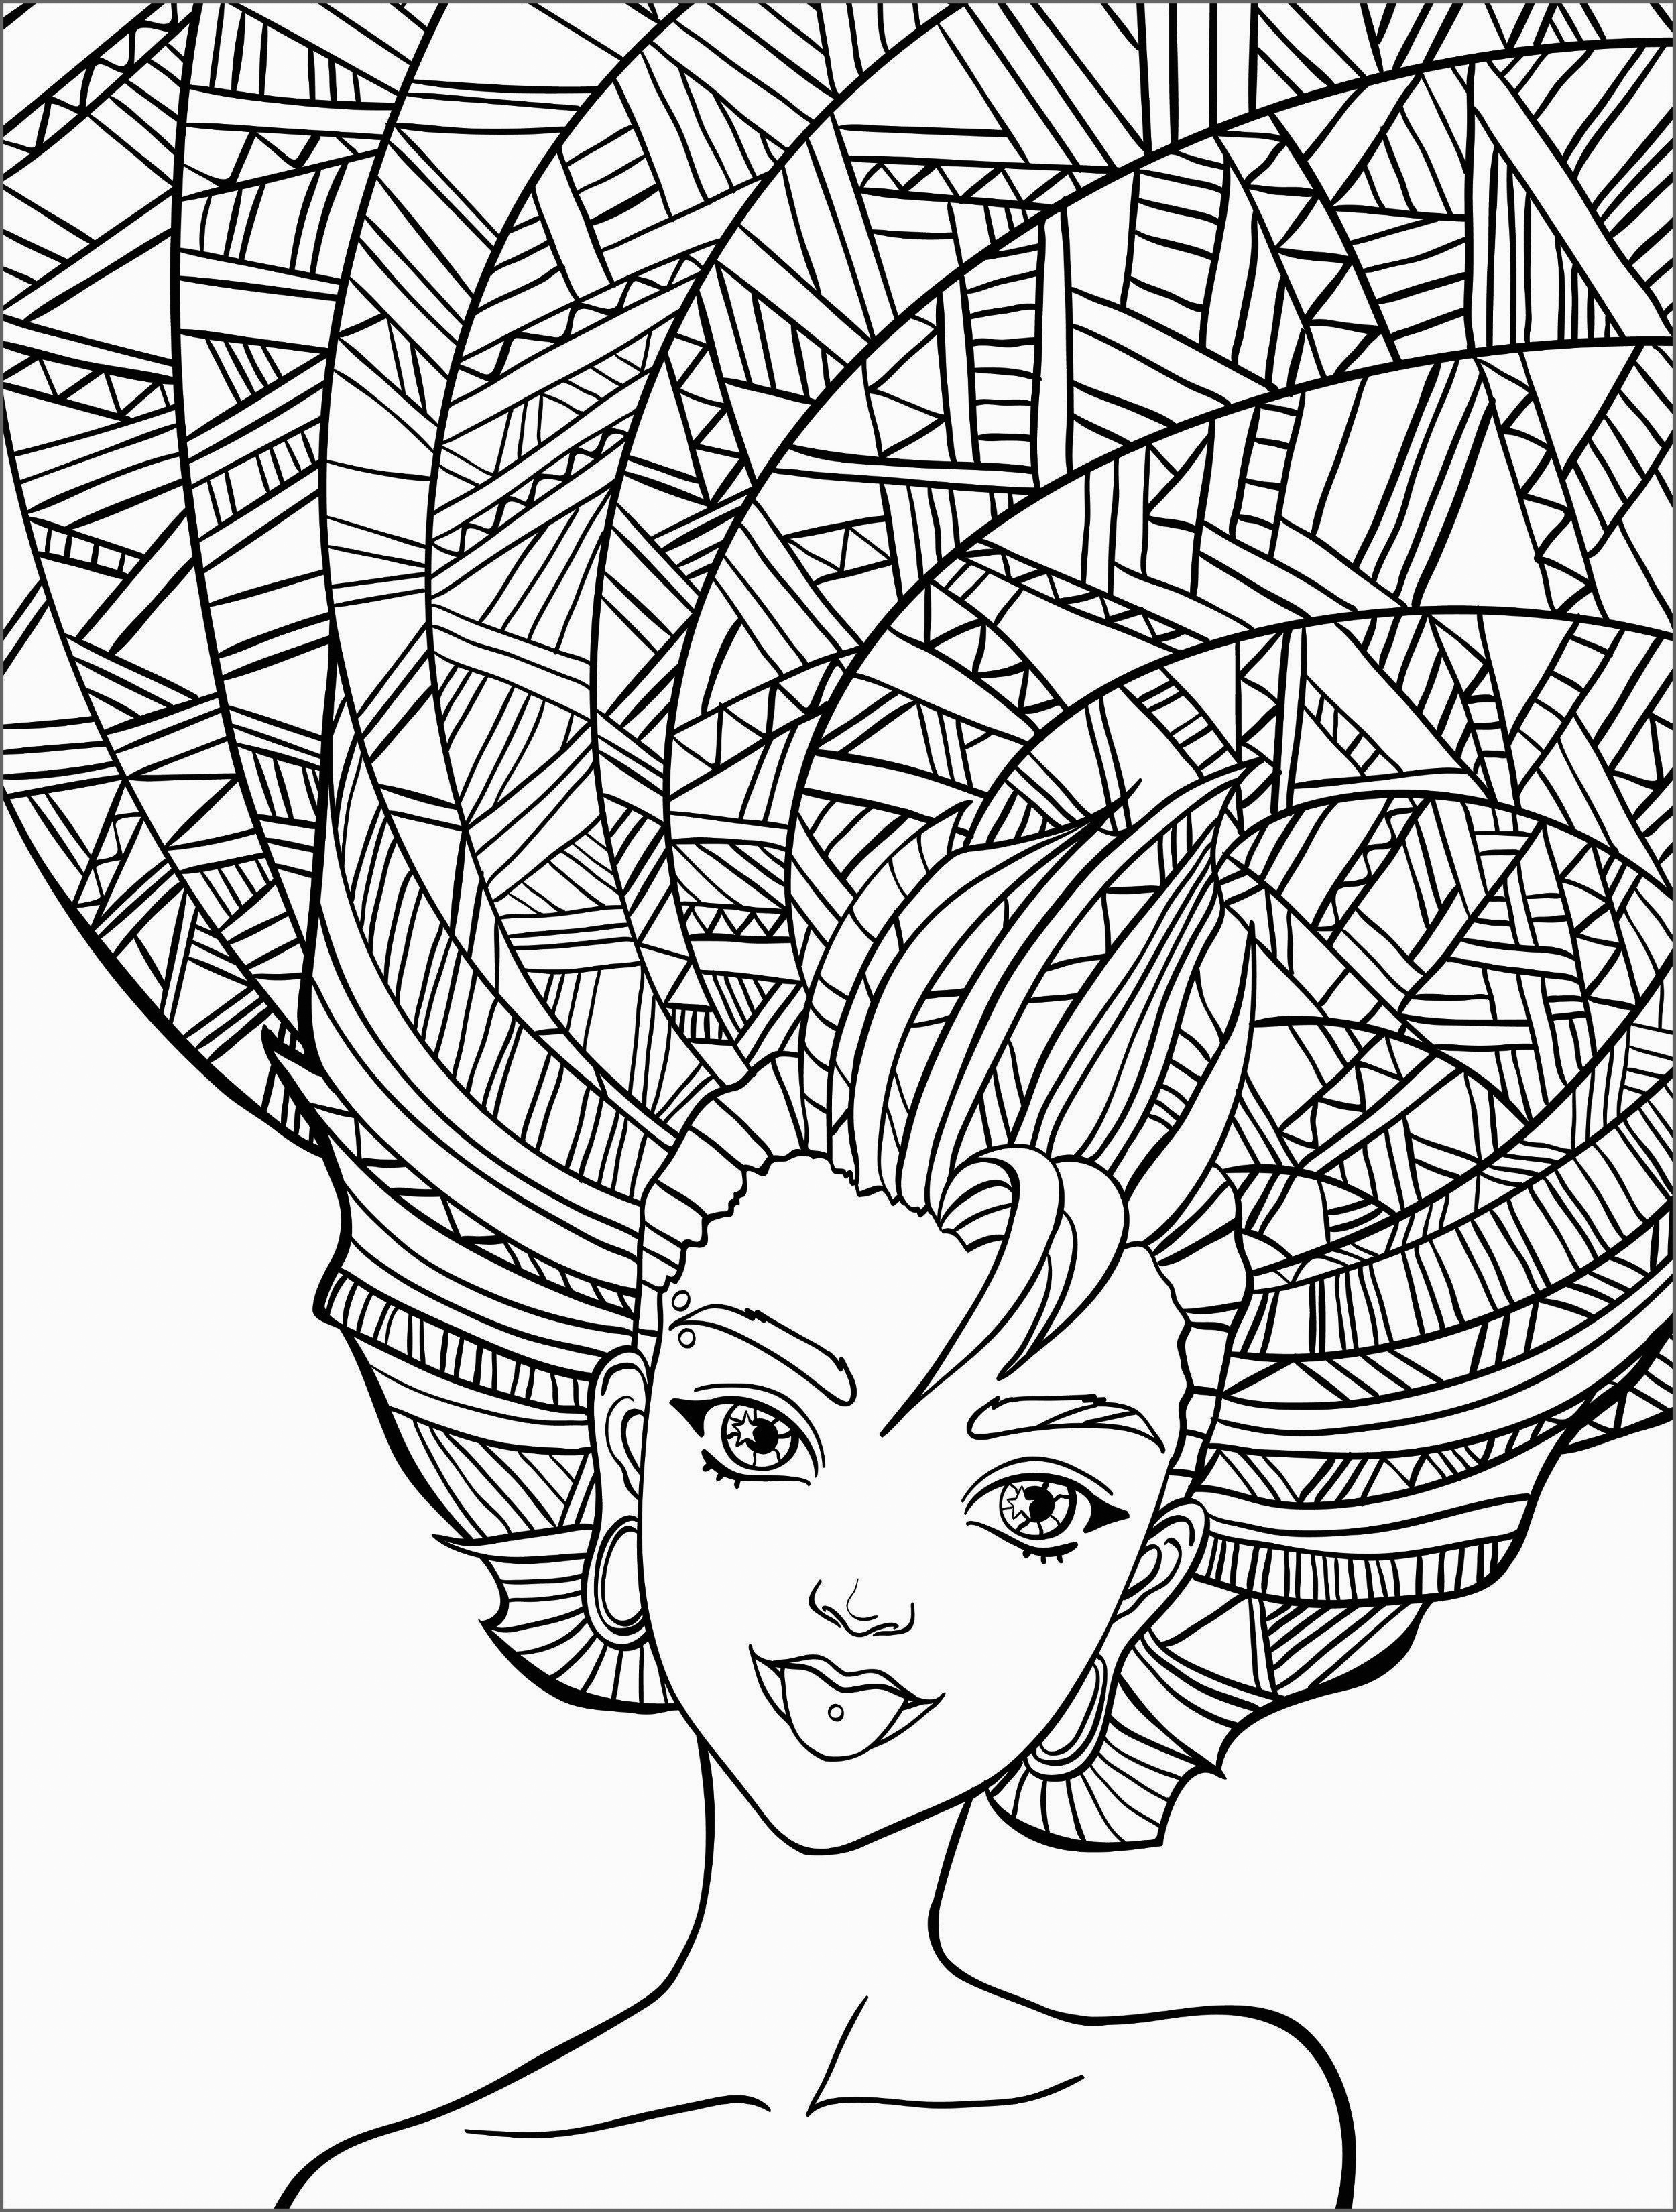 Coloring Pages for Adults Best